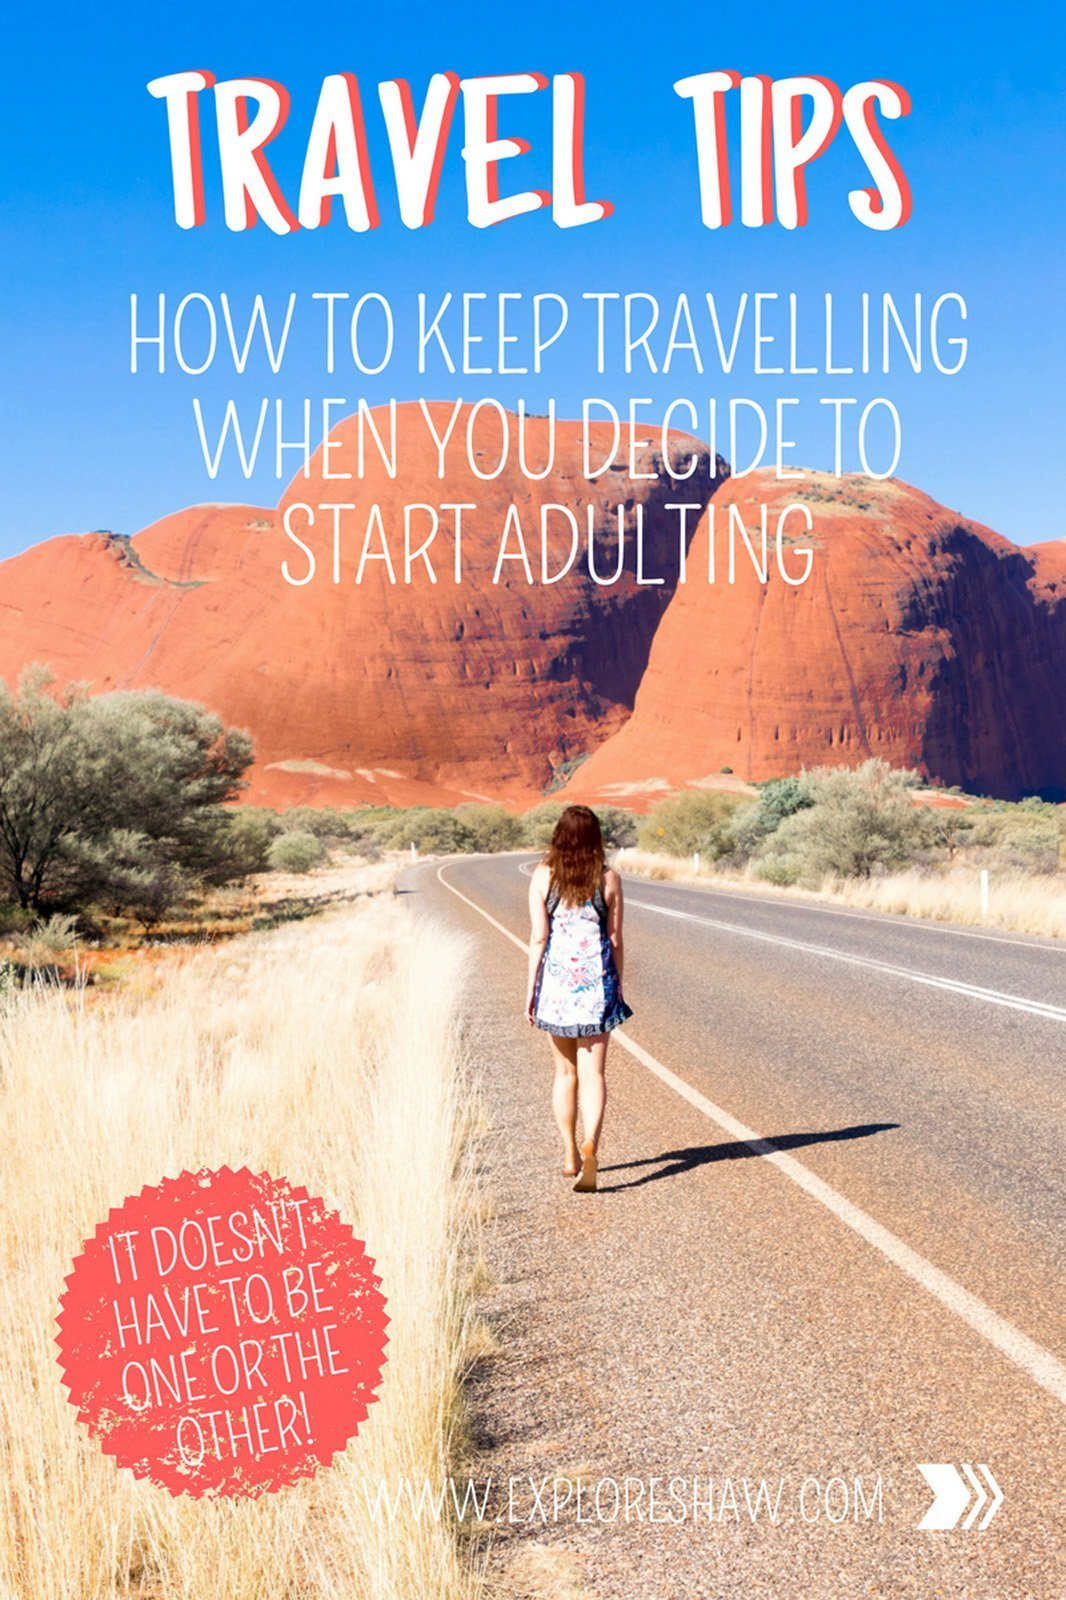 HOW TO KEEP TRAVELLING WHEN YOU DECIDE TO START ADULTING